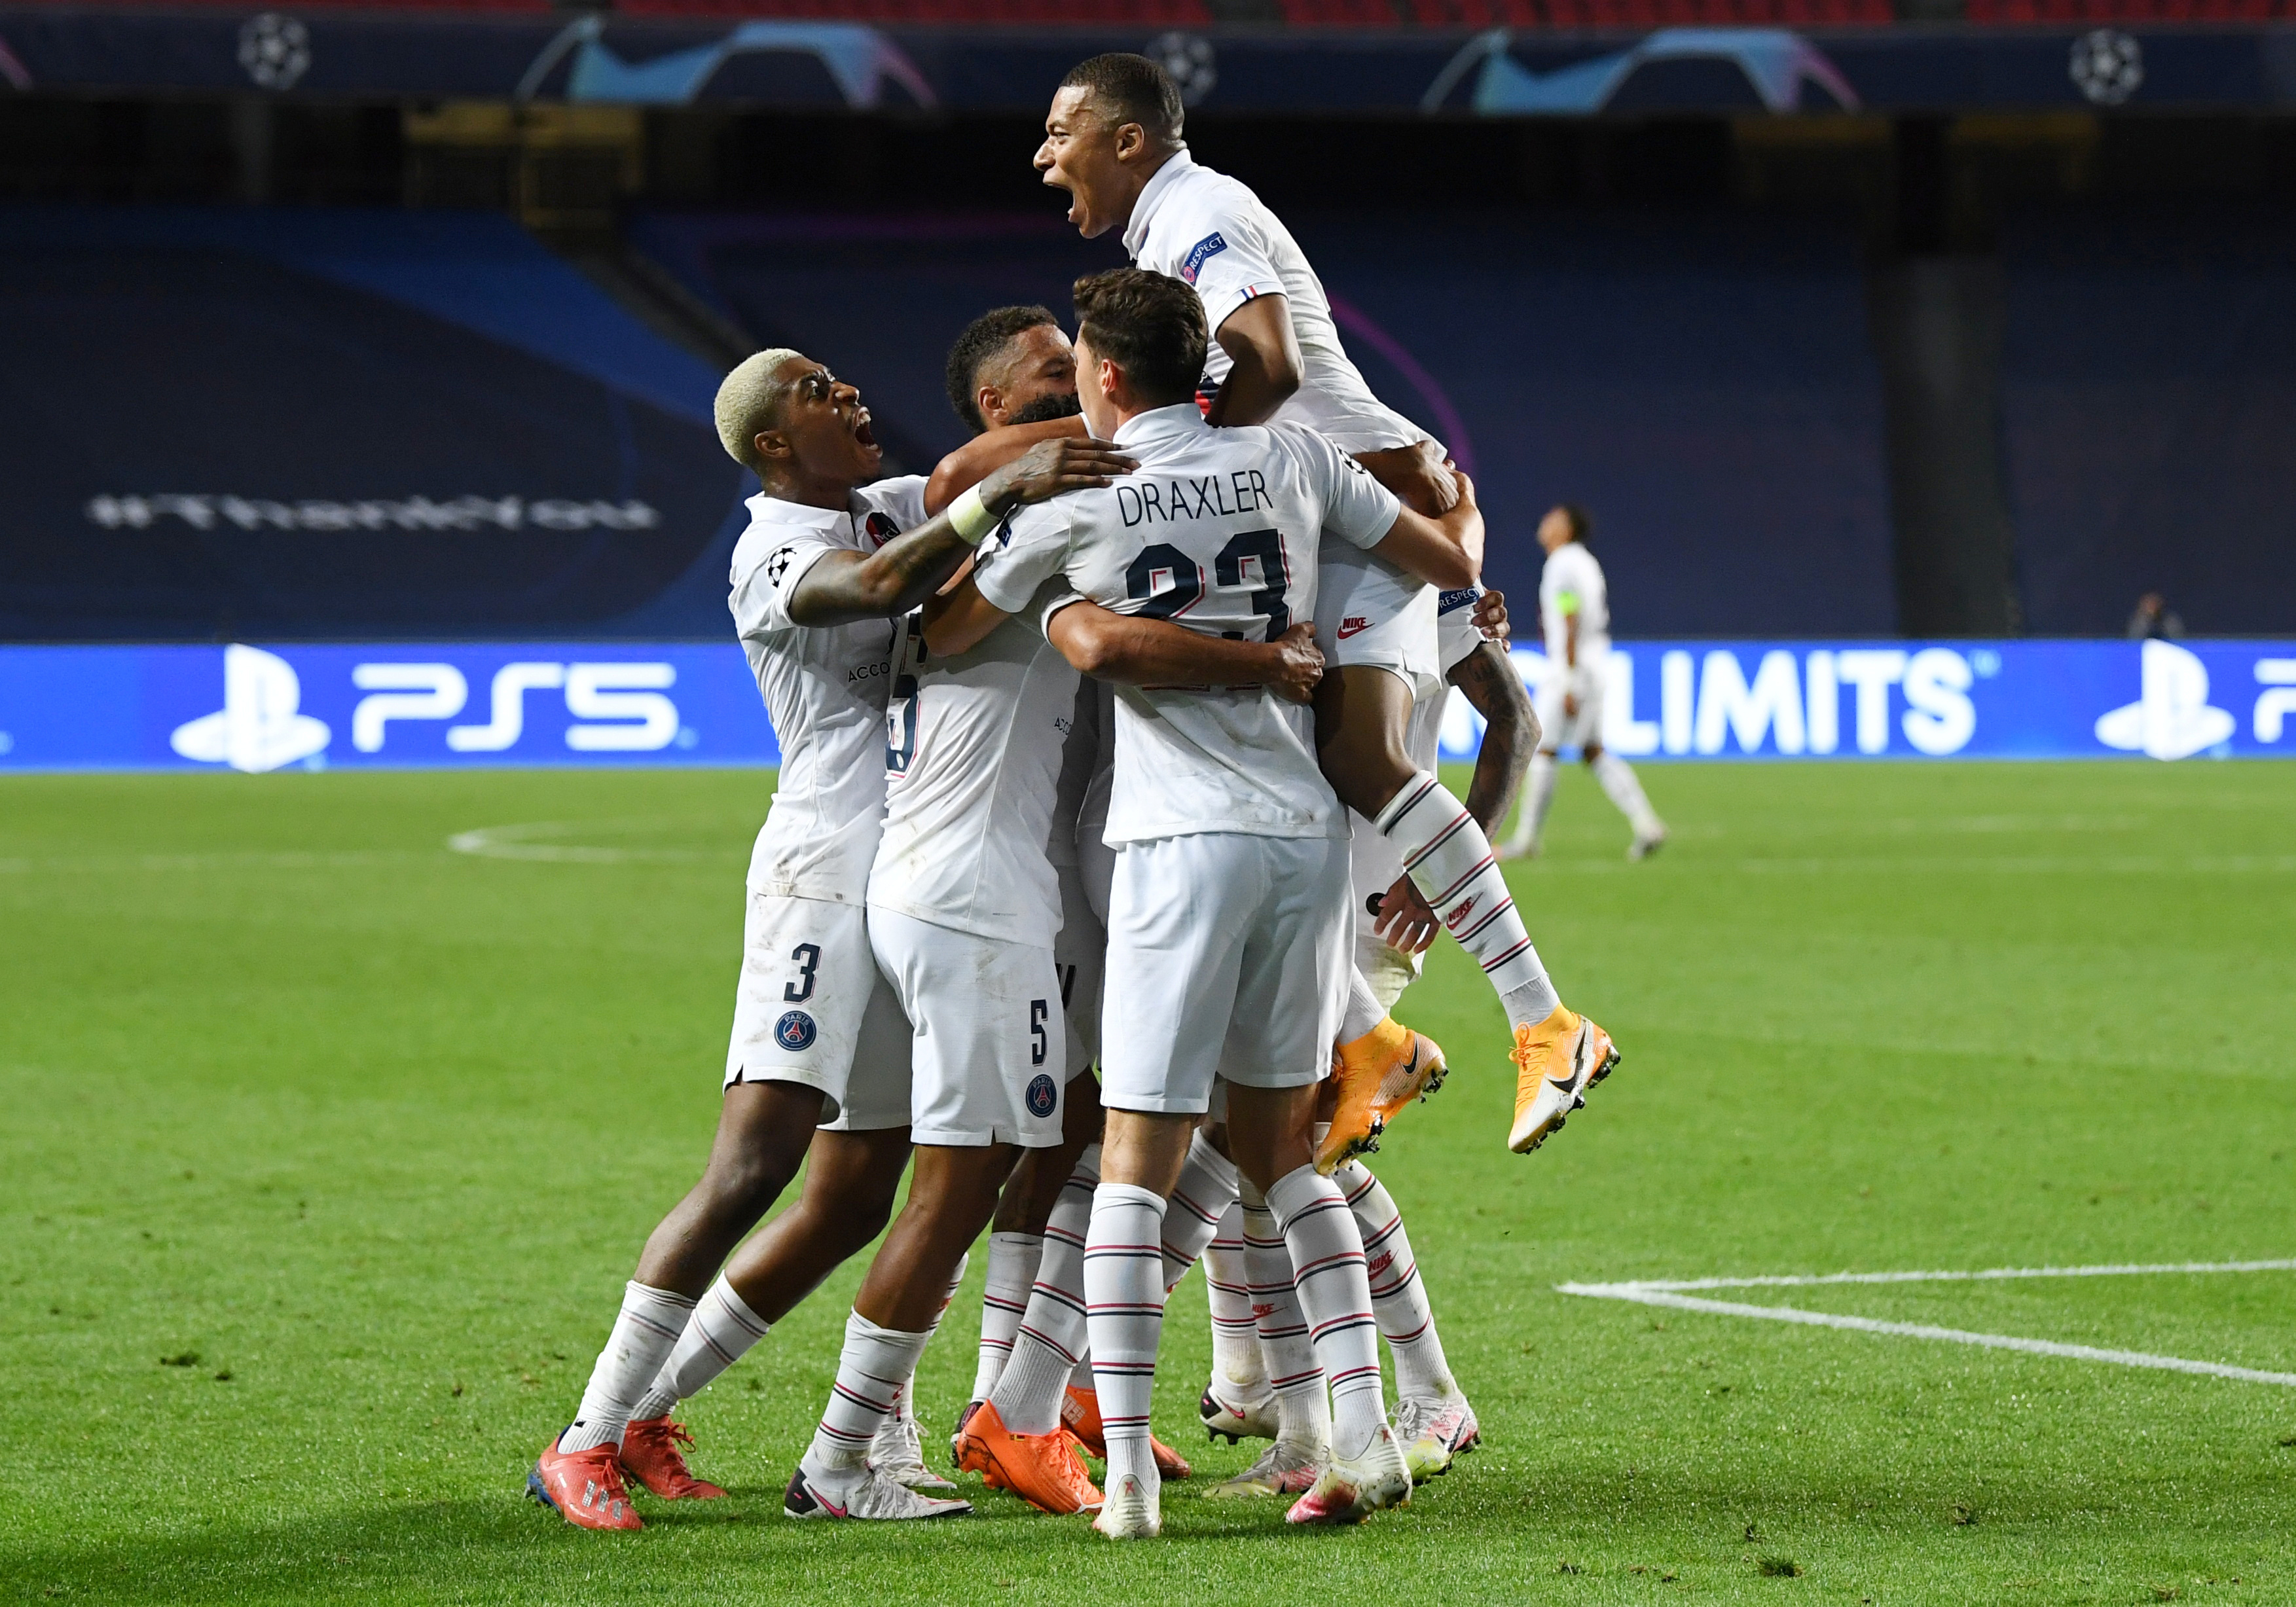 Paris St Germain's Marquinhos celebrates scoring their first goal with Kylian Mbappe and teammates, as play resumes behind closed doors following the outbreak of the coronavirus disease (COVID-19). Photo: Reuters